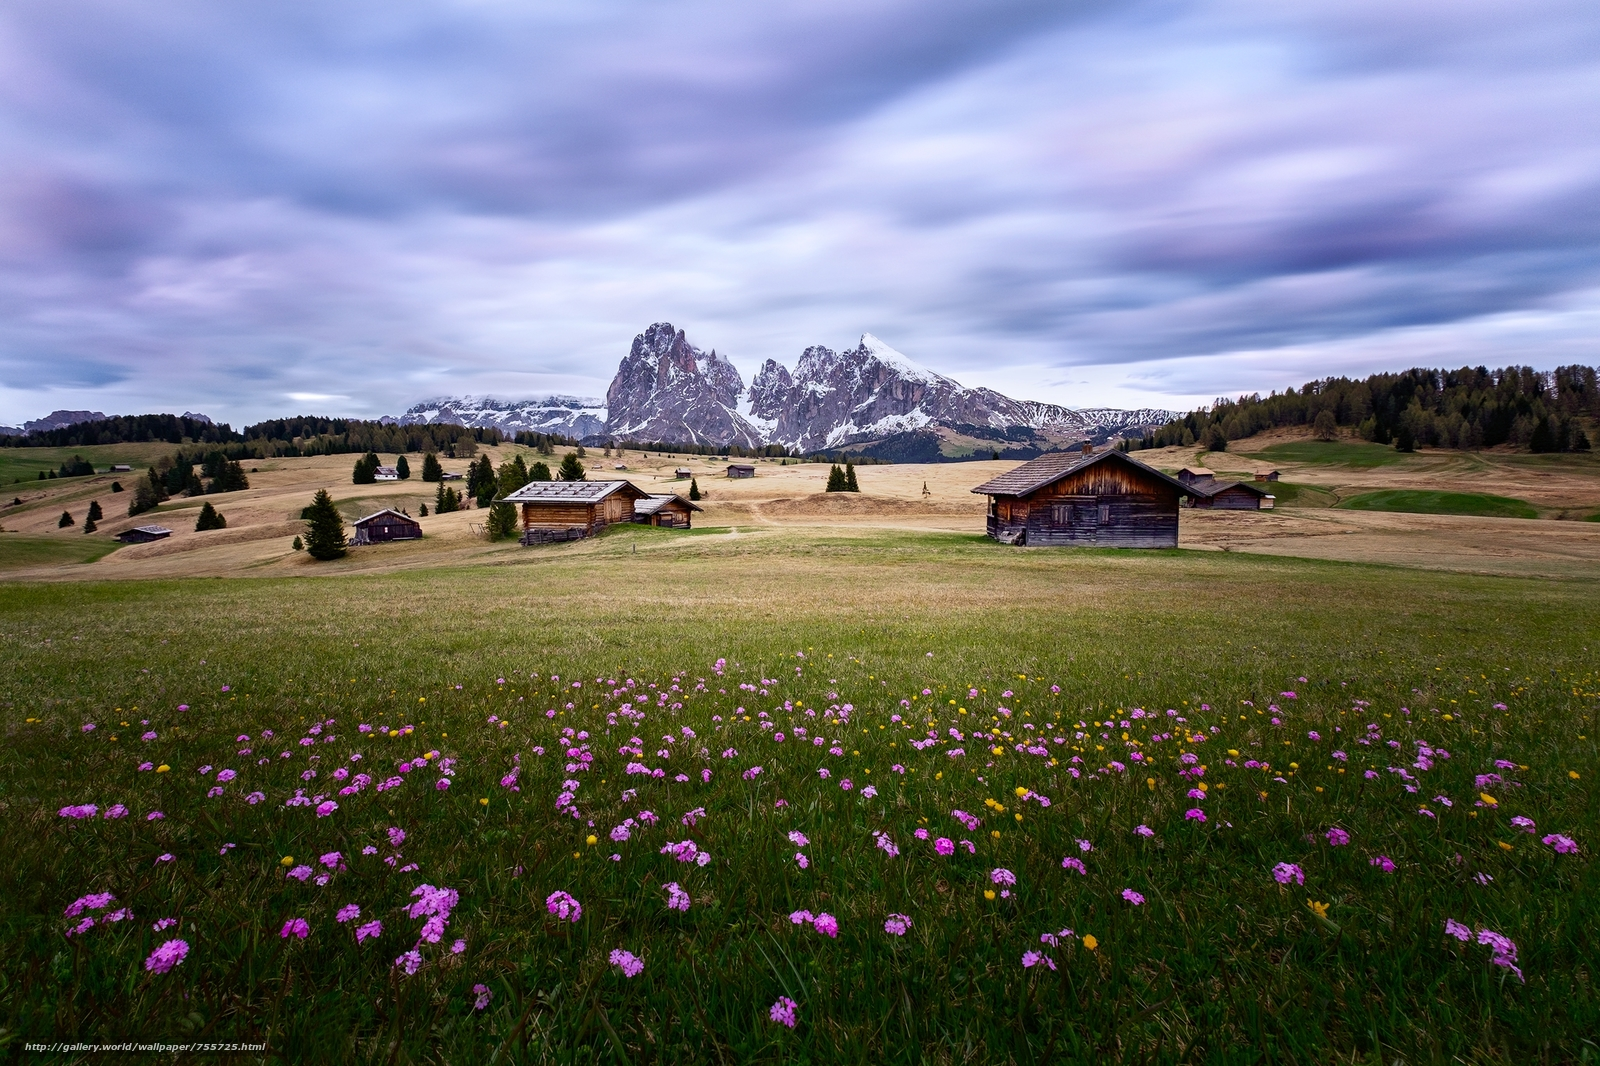 Italy, dolomites, field, the mountains, flowers, at home, landscape